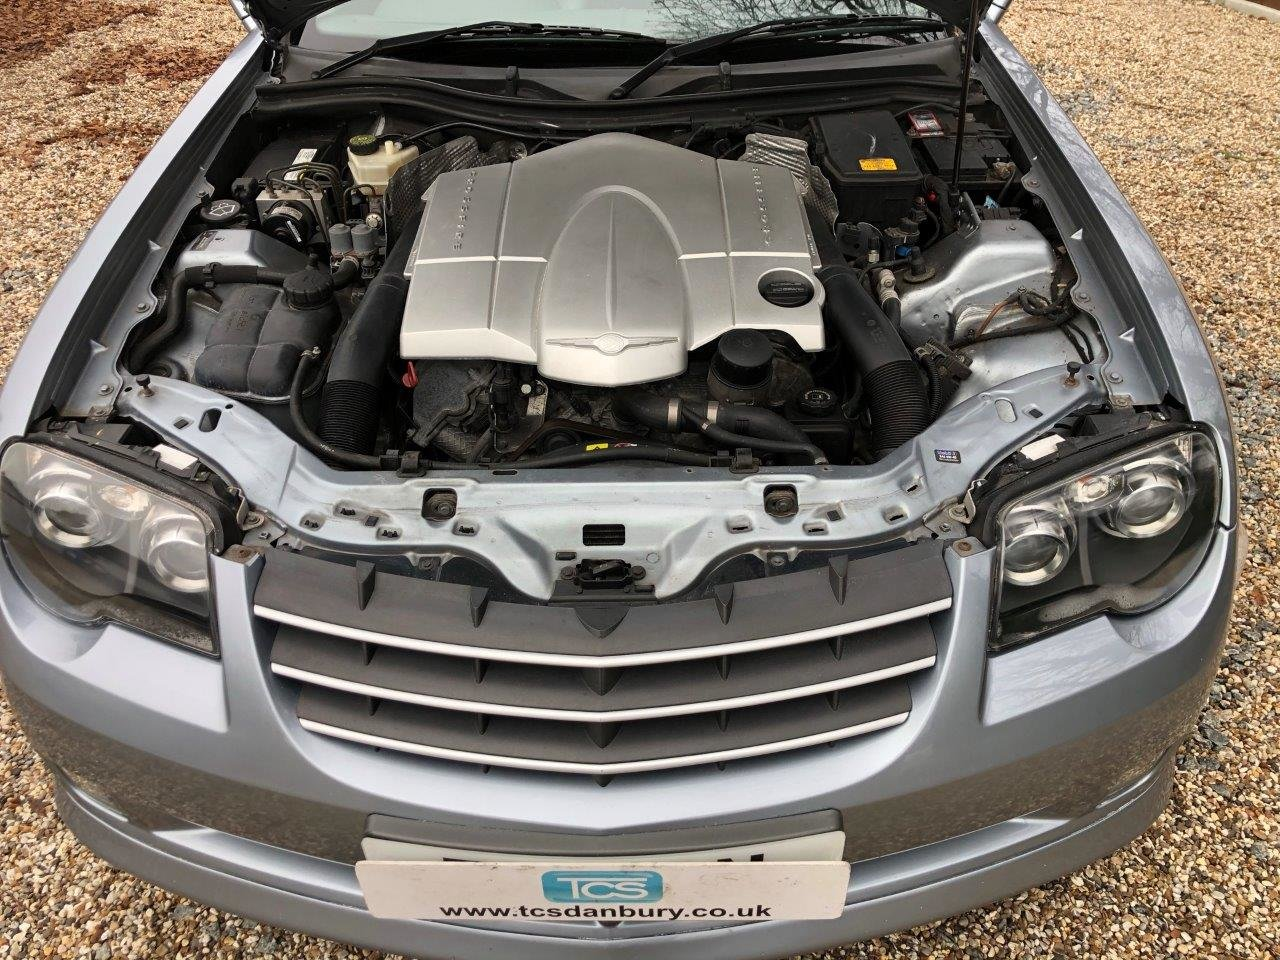 2003 Chrysler Crossfire 3.2i V6 Coupe 5-Speed Automatic SOLD (picture 12 of 12)